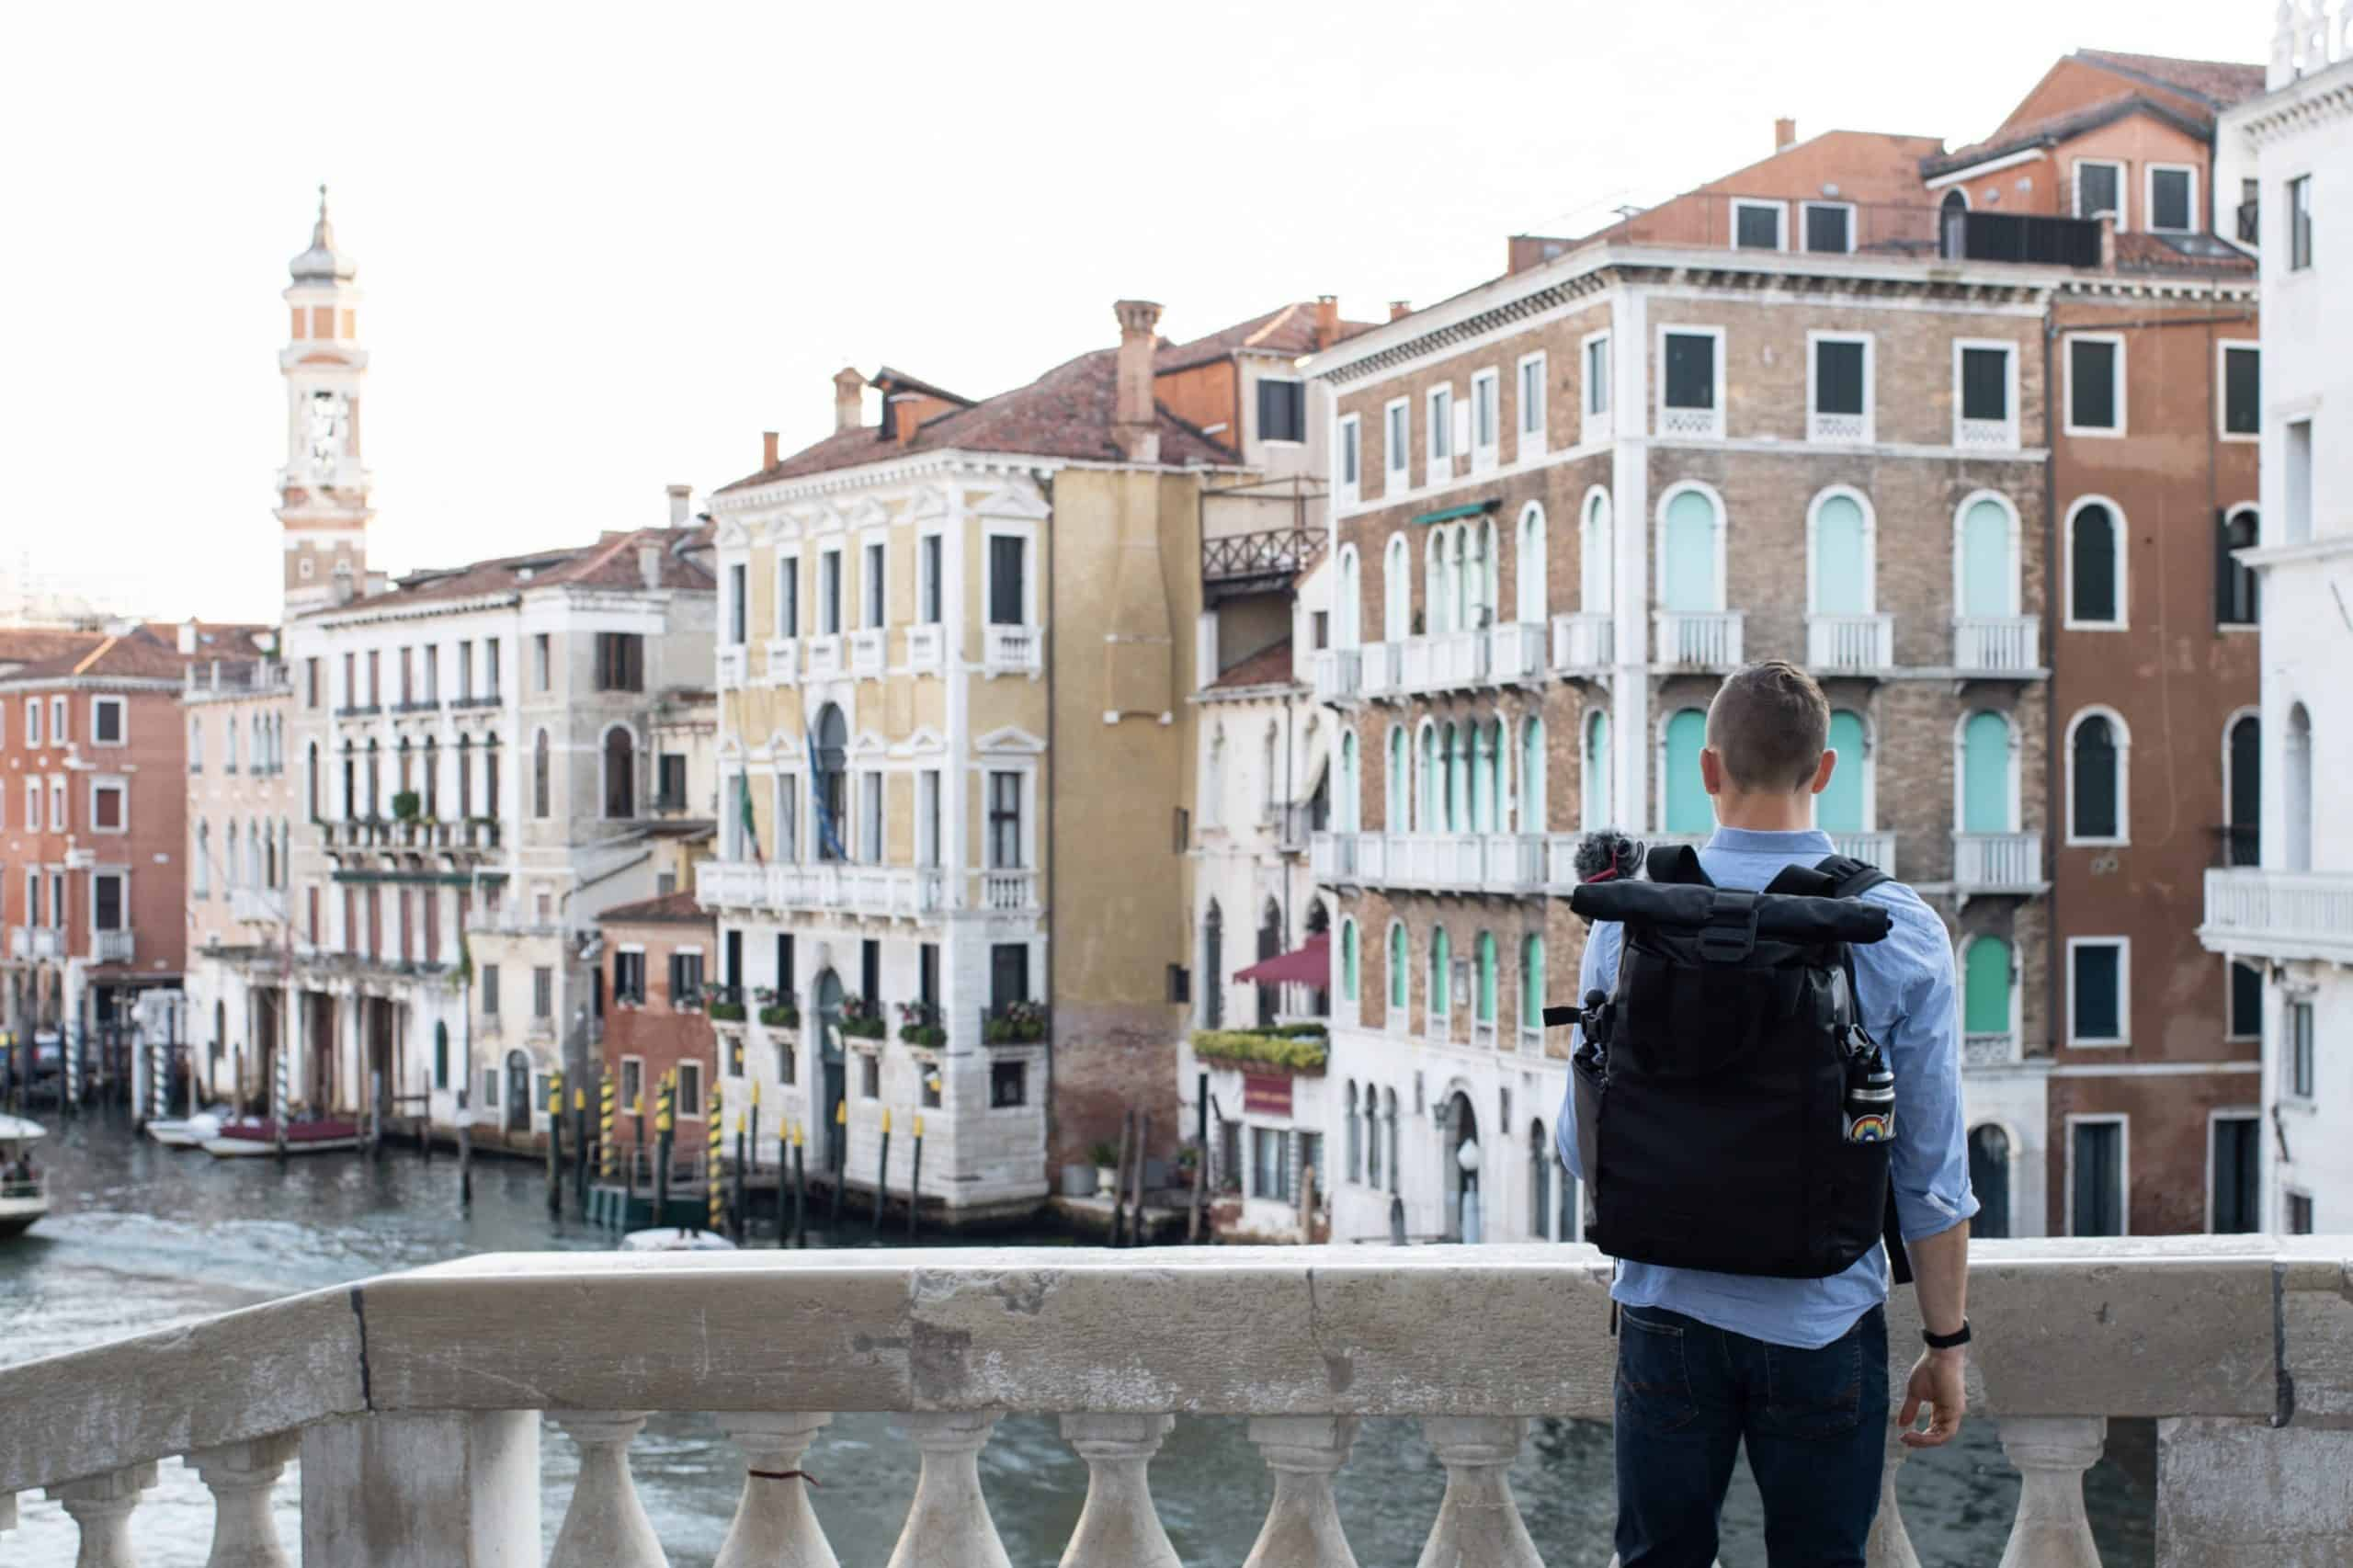 1 Day in Venice, Italy   Venice Travel Guide   Venice Itinerary   Things to do in the Venice   Where to stay in Venice   Best gelato Venice   Best food Venice   What to do in Venice   Venice, Italy   Where to eat in Venice   1 Day Itinerary Venice